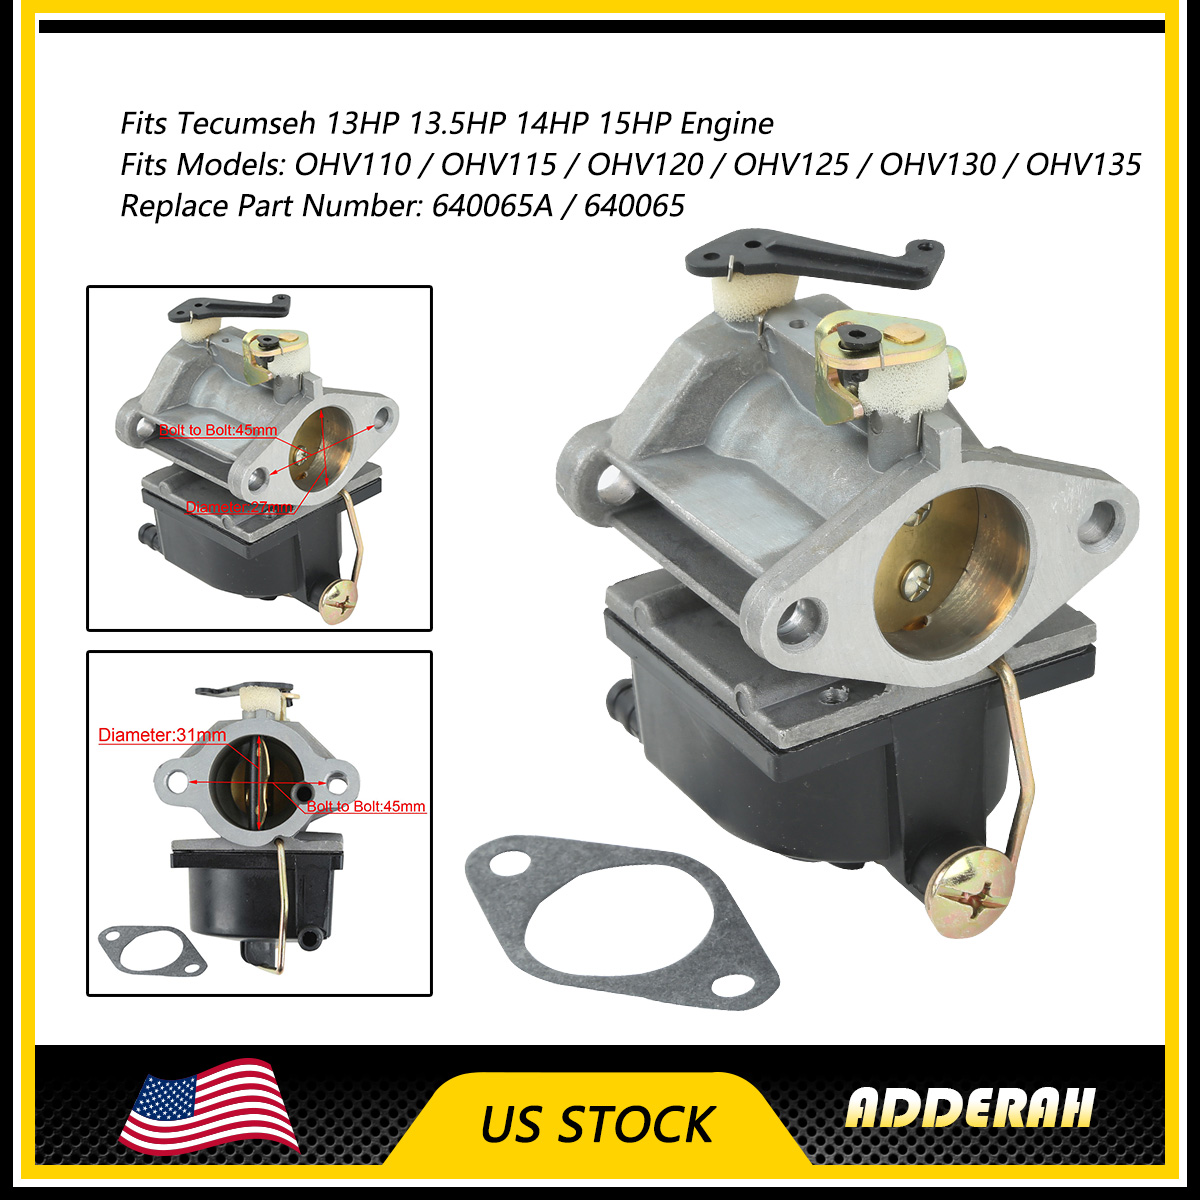 Carburetor for Tecumseh 640065A 640065 OHV110 OHV115 OHV120 OHV125 OHV130 OHV135 OV358EA Engines 13HP 13.5HP 14HP 15HP Tractor